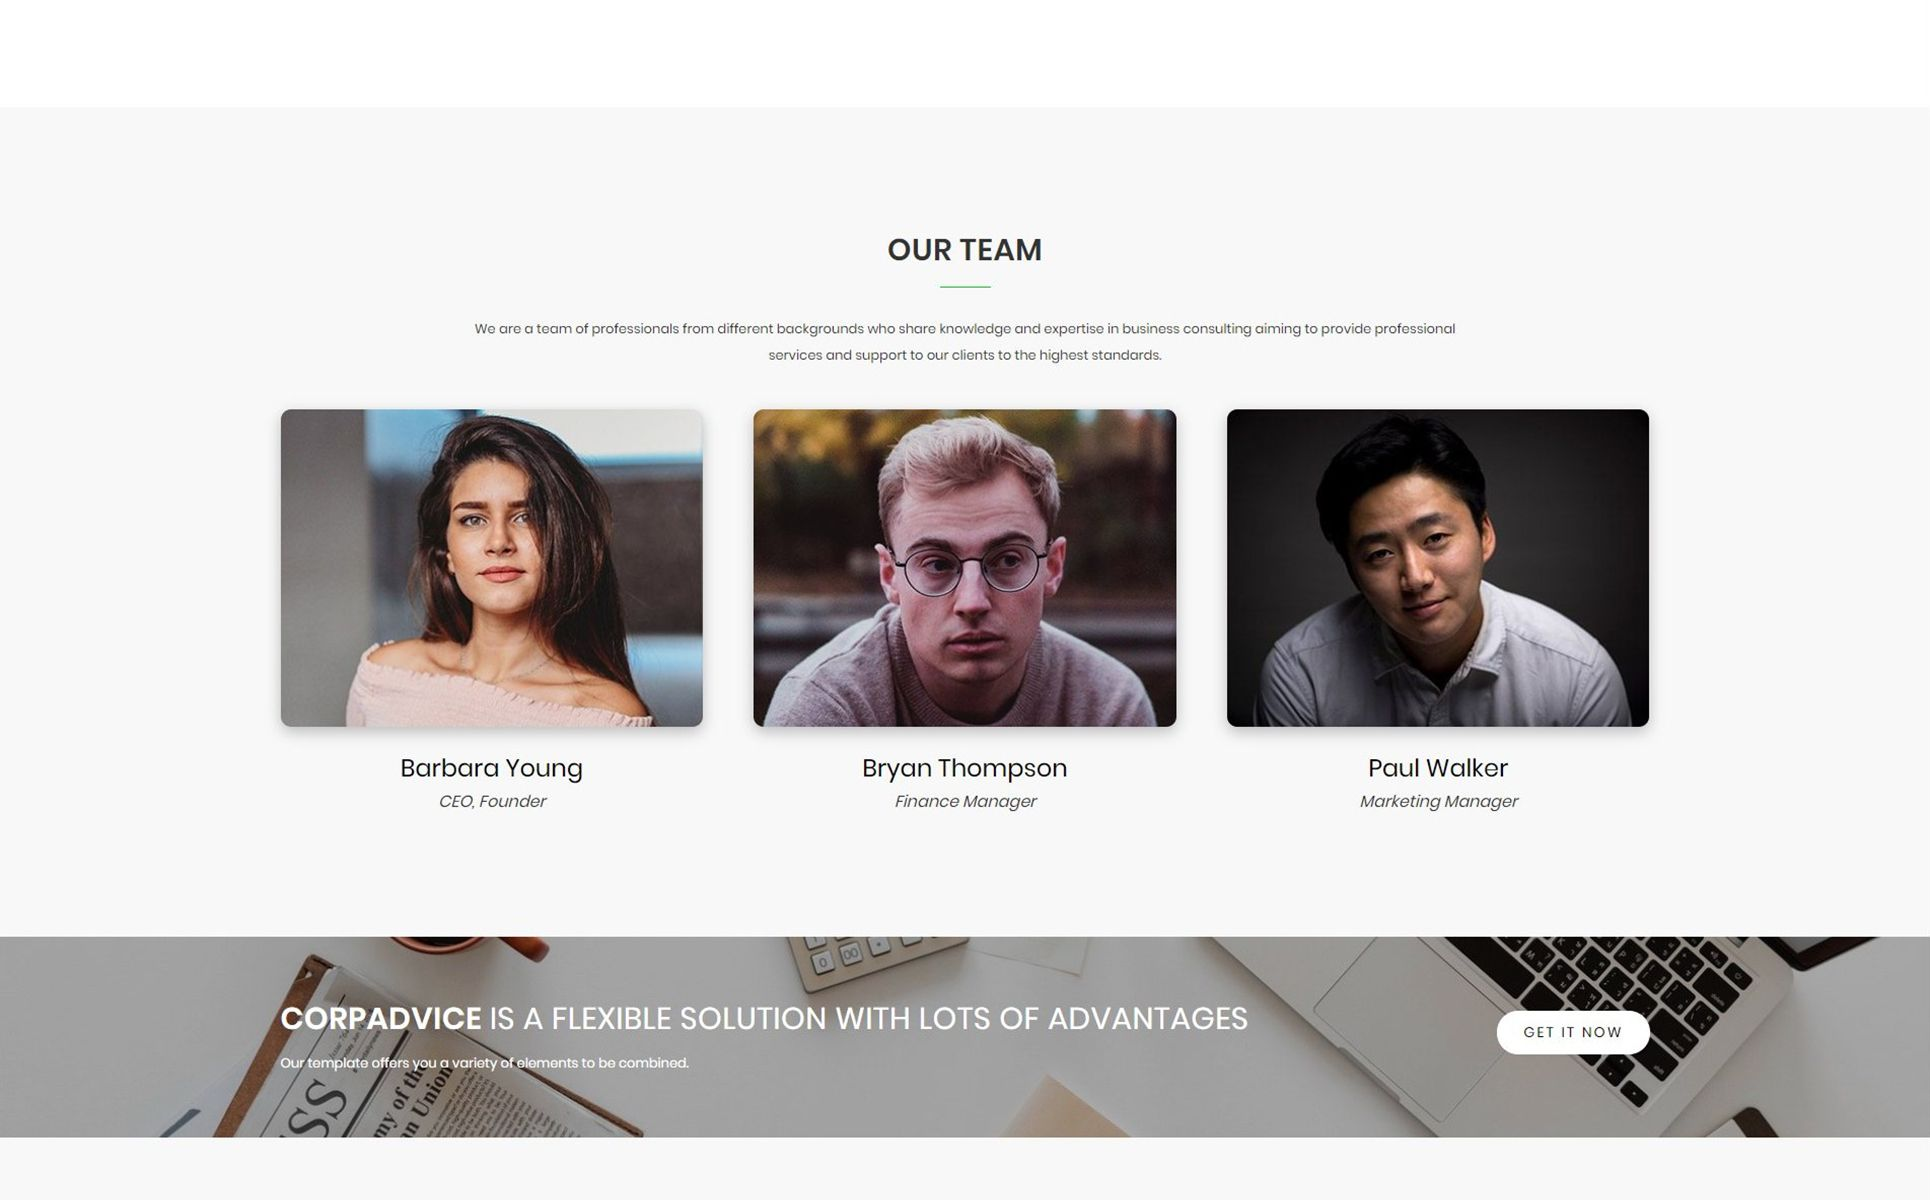 CorpAdvice Fresh Business Consultancy Agency Landing Page Template